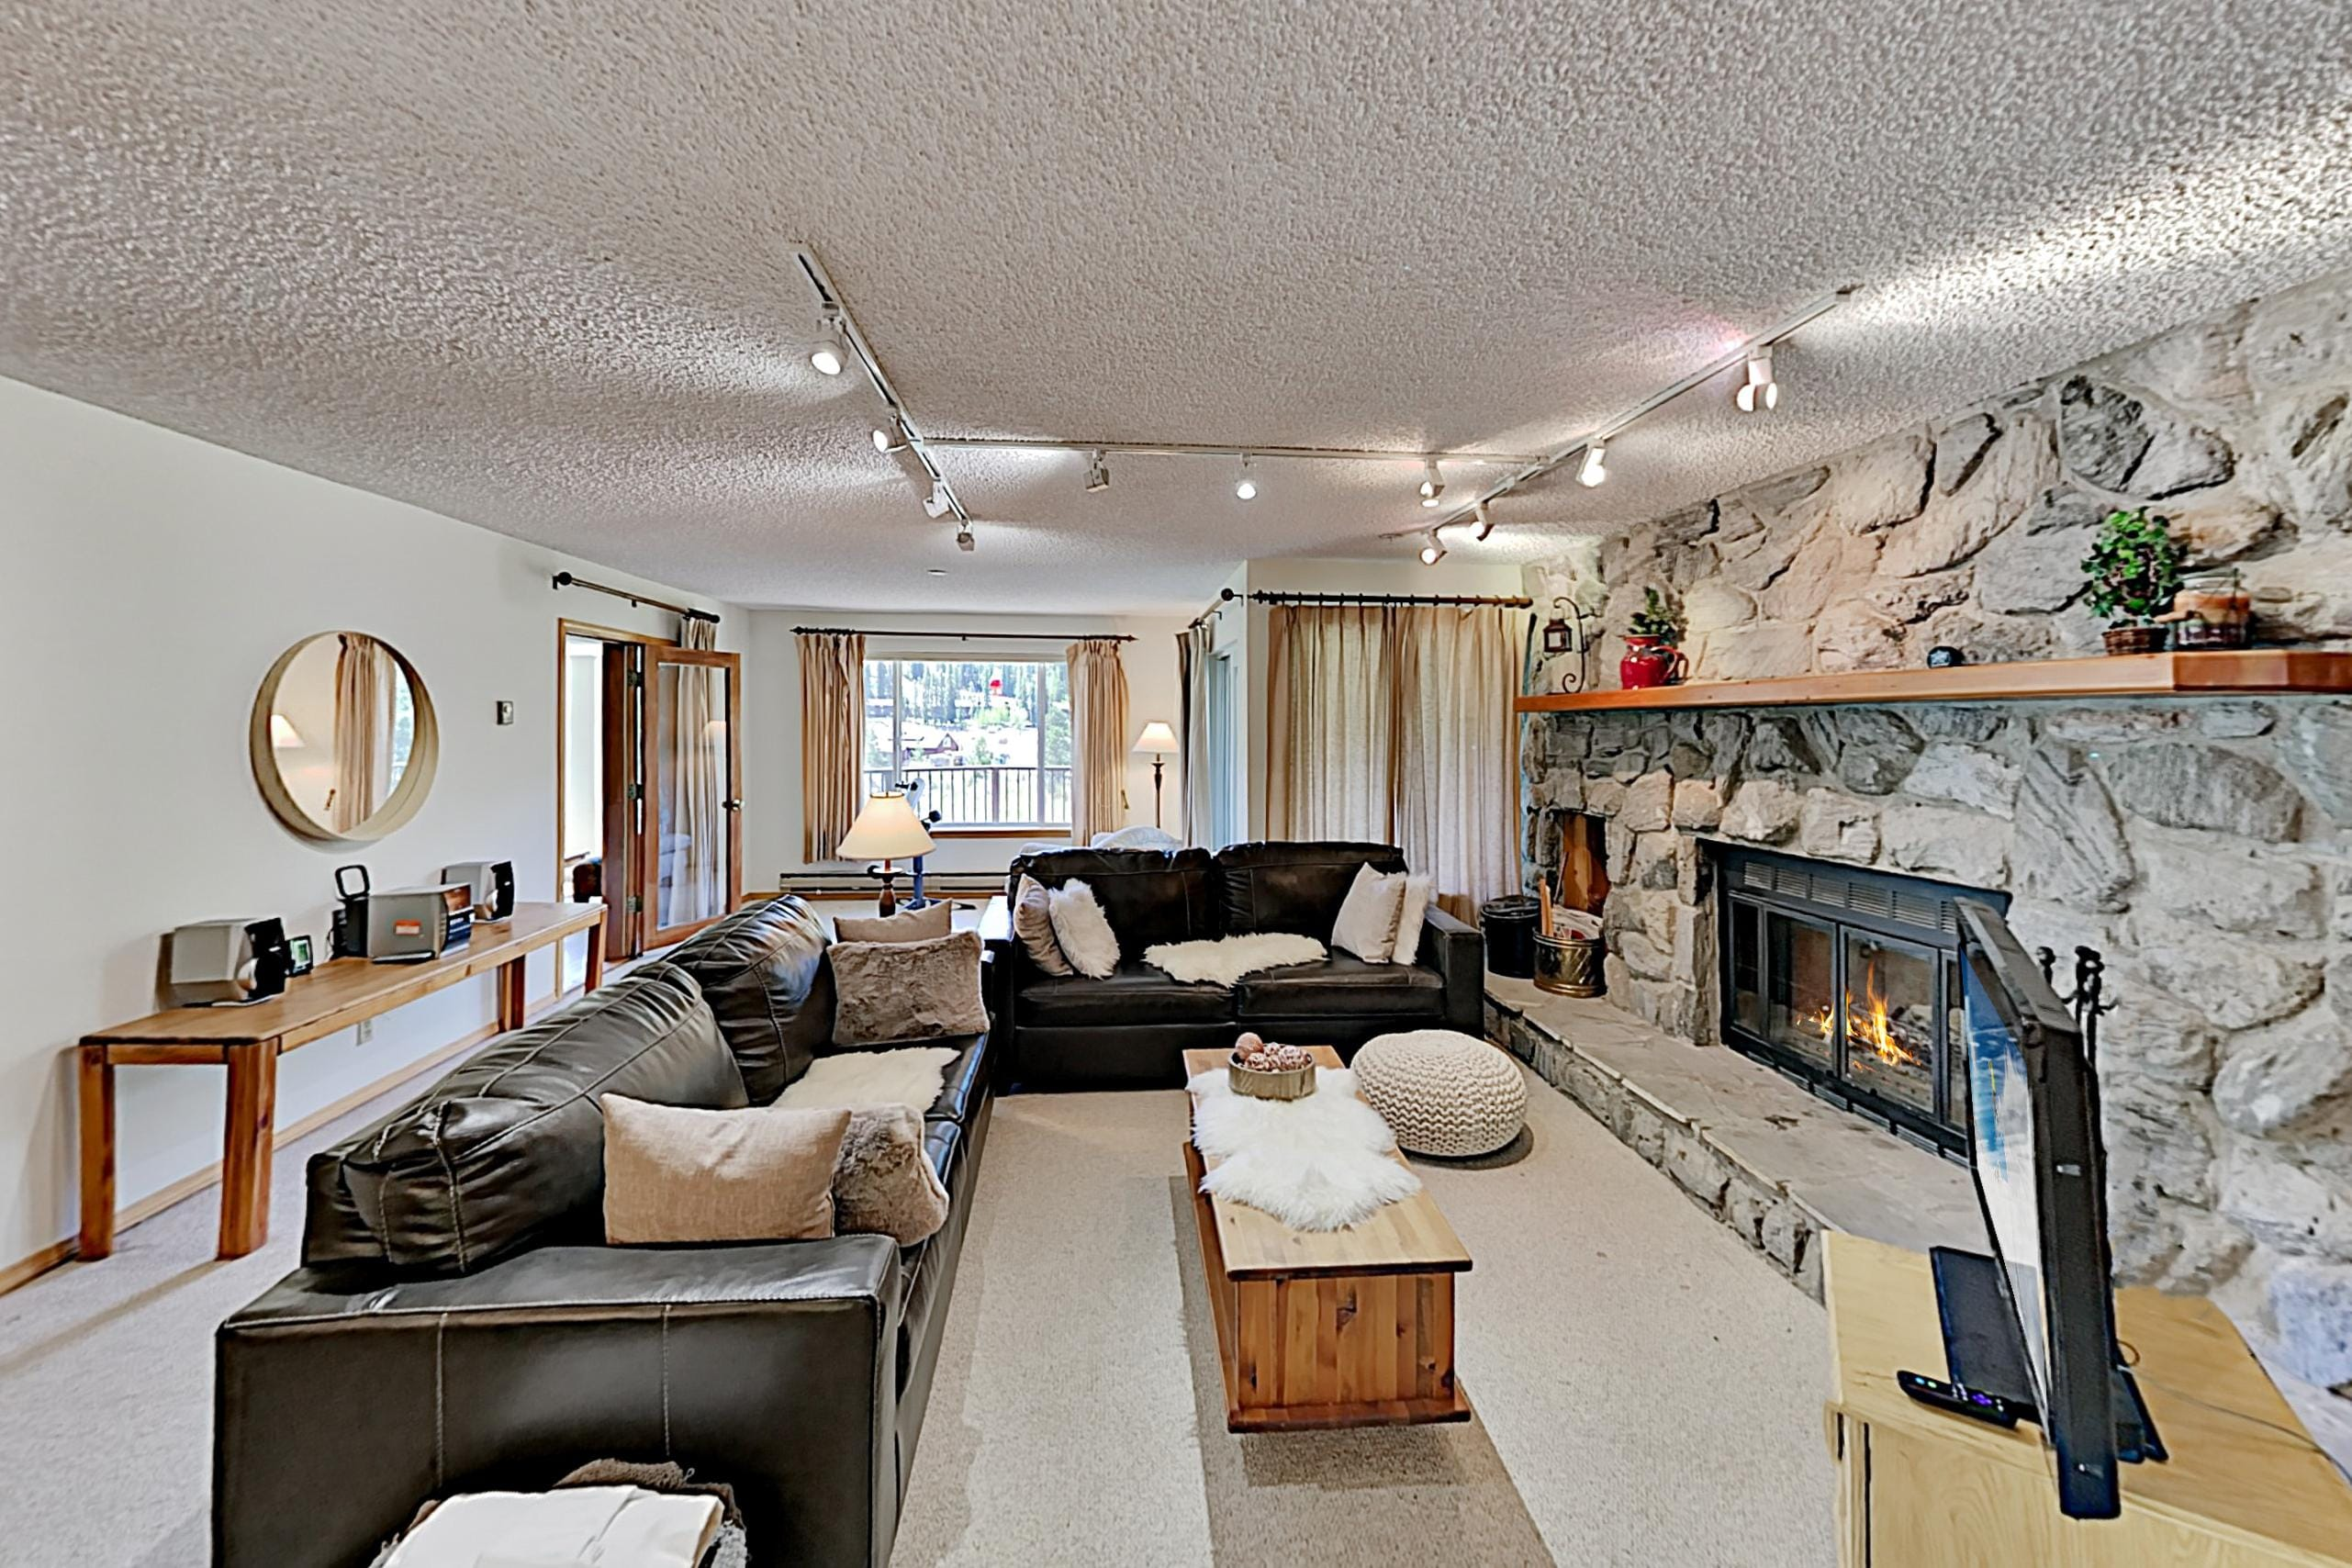 Property Image 1 - Spacious Mountain Condo with Private Sauna & Deck, Walk to Slopes